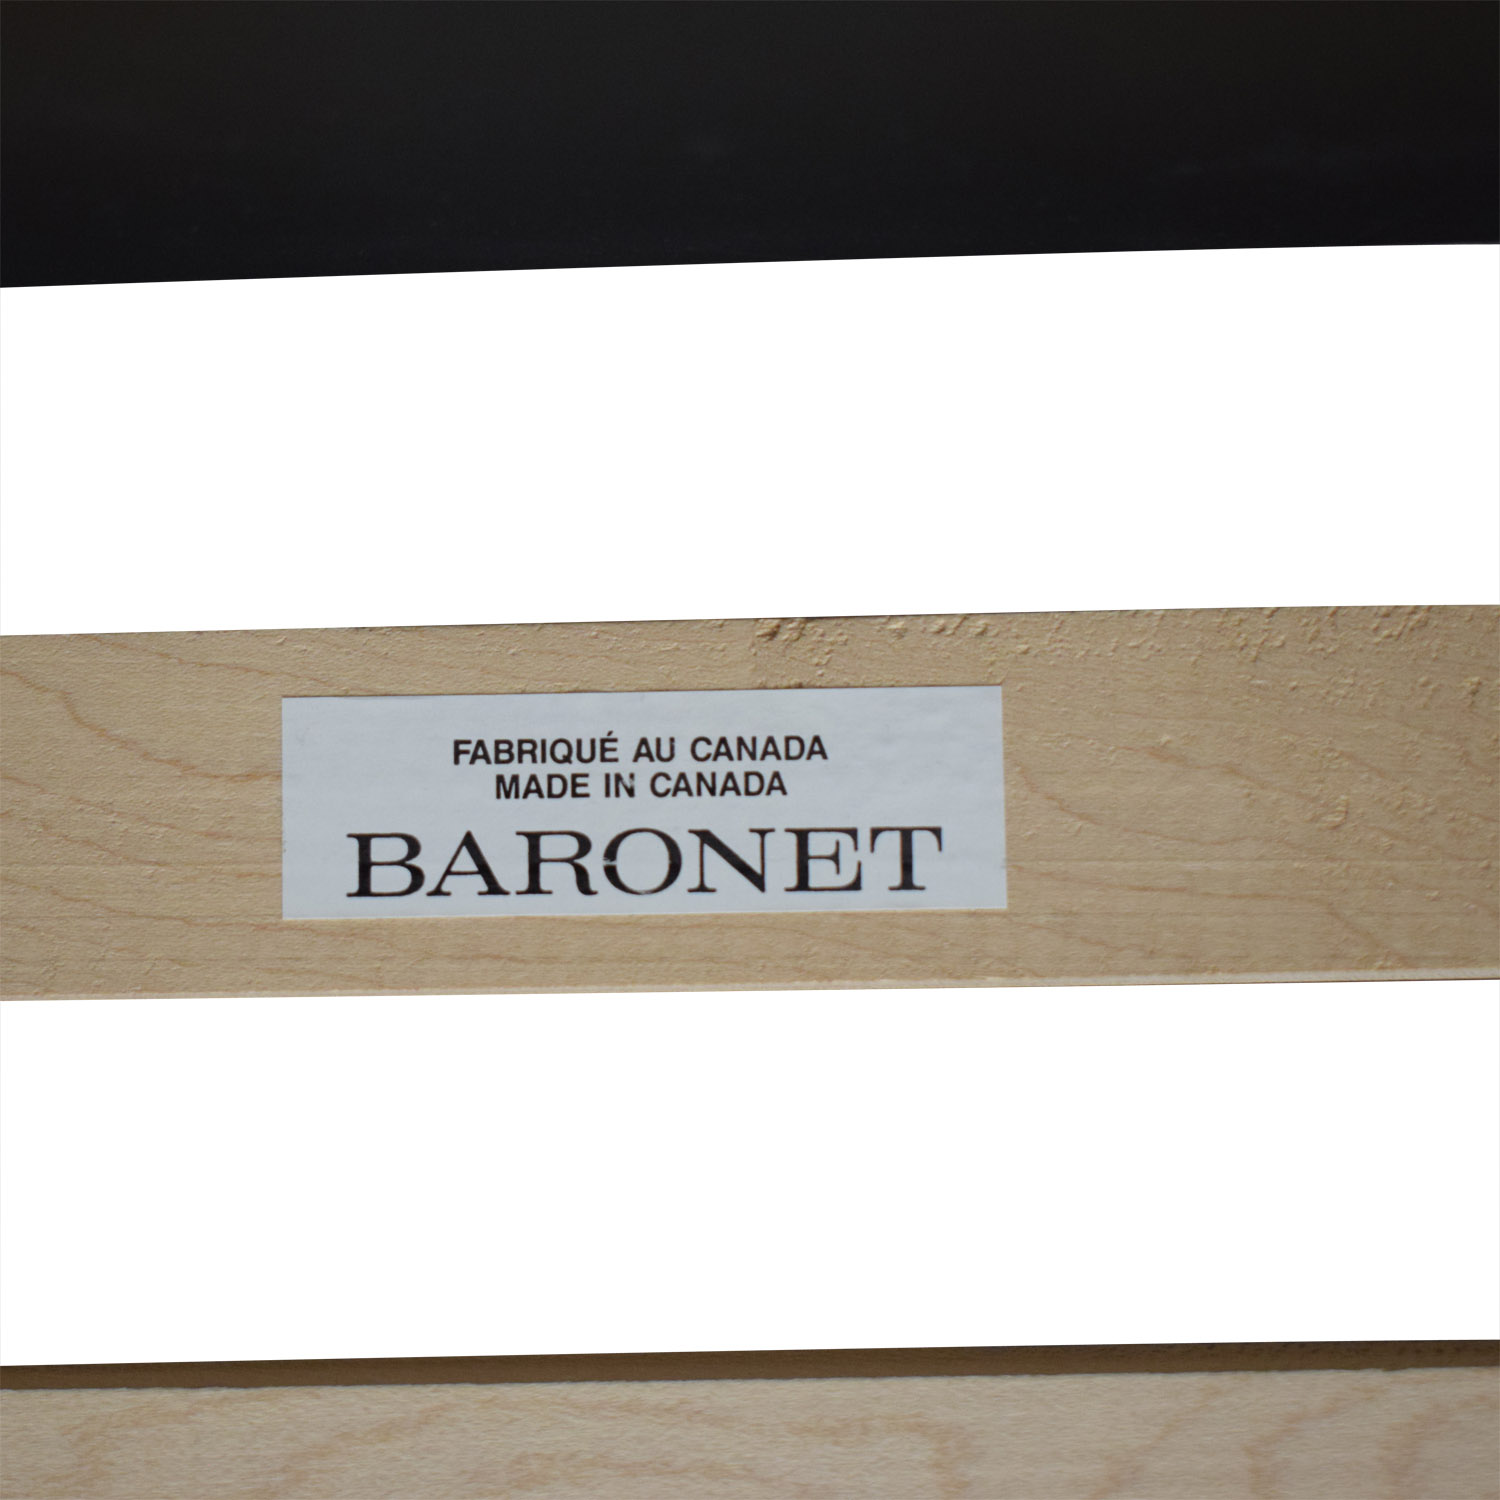 Baronet Baronet Wood King Bed Frame used